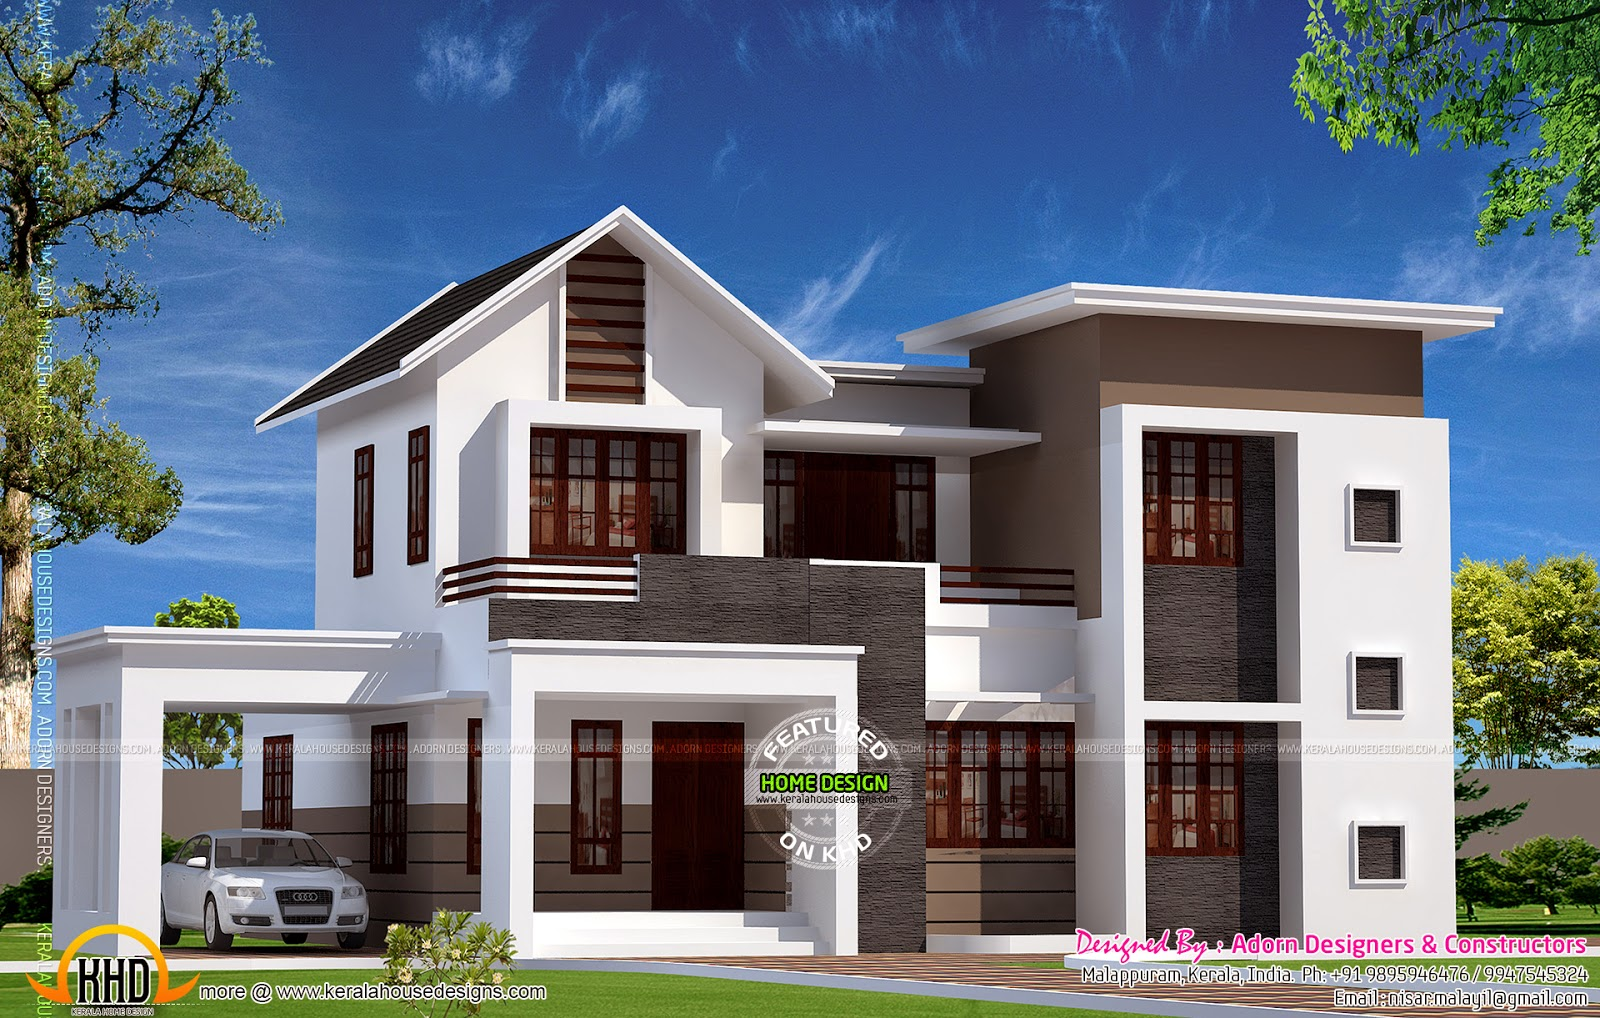 house design sq feet kerala home design floor plans big house floor plan house designs floor plans house floor plans